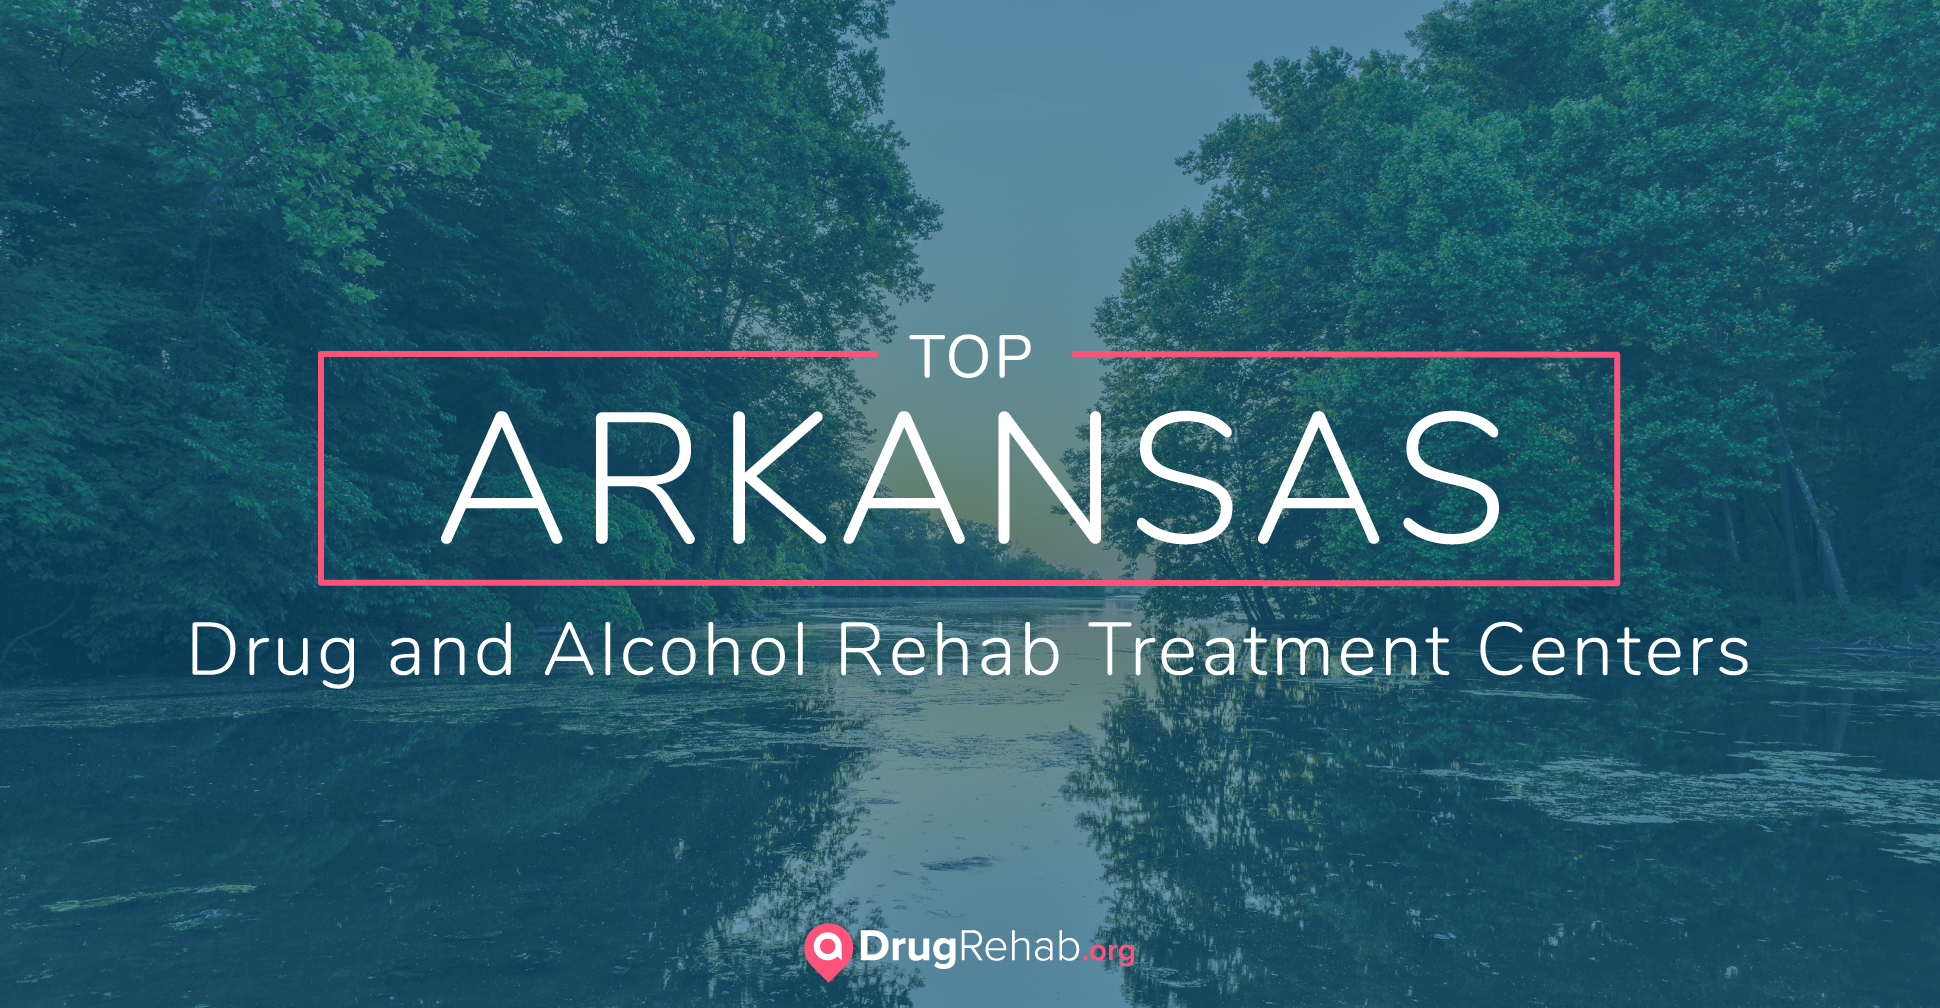 Top 7 Arkansas Drug and Alcohol Rehab, Drug rehabs in Arkansas